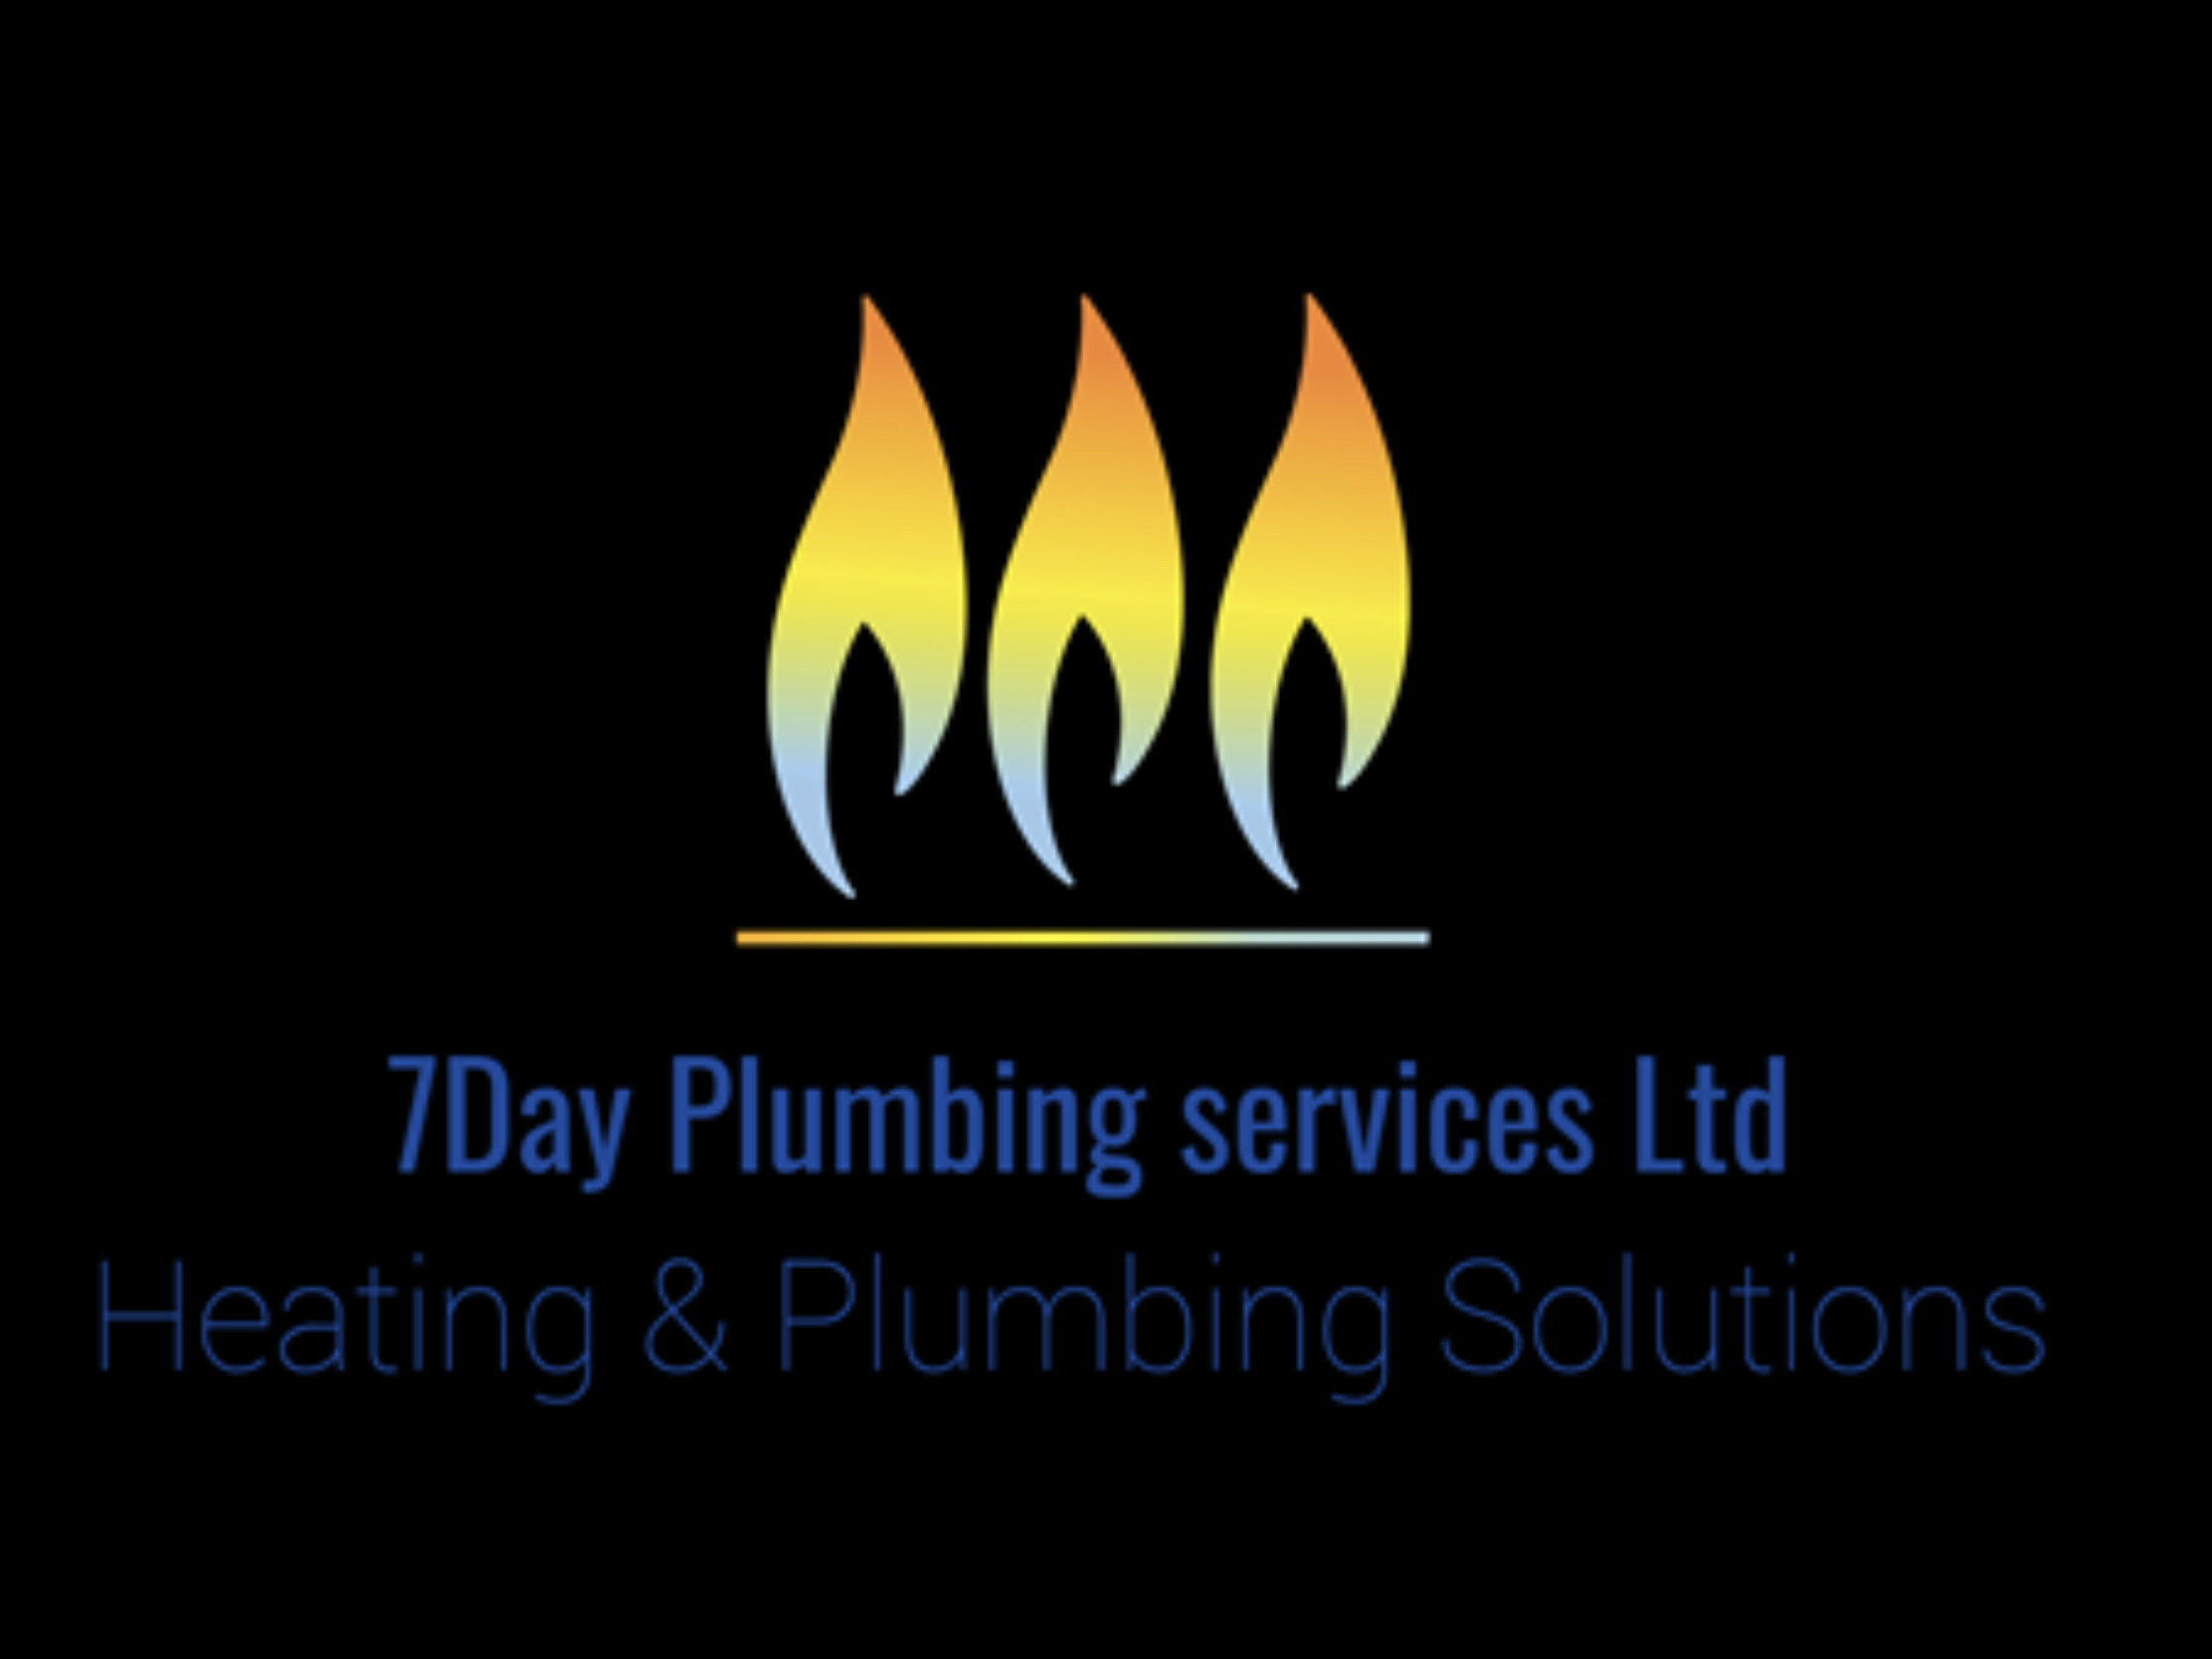 7day plumbing services ltd Verified Logo